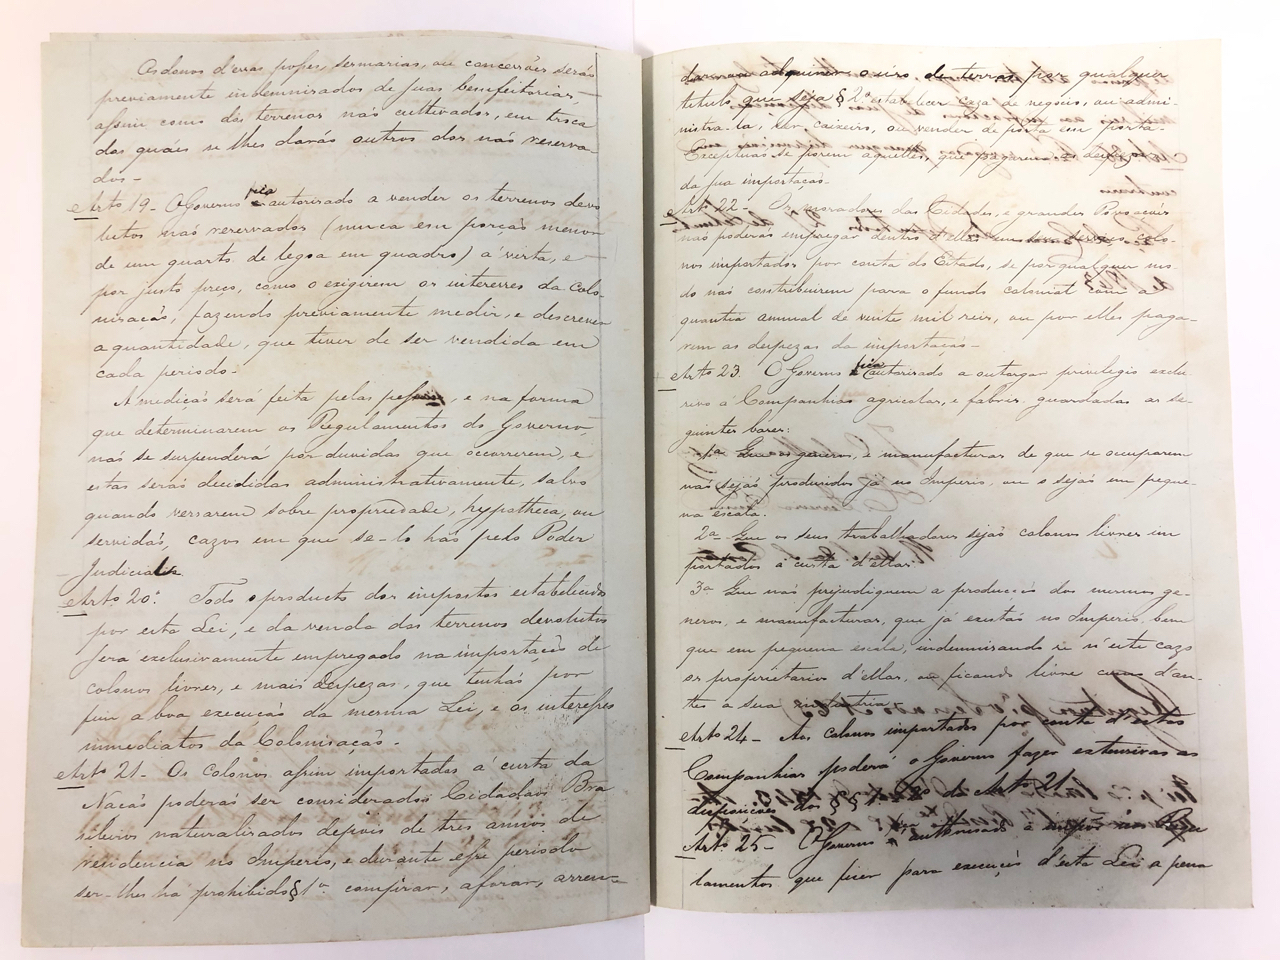 Draft of Brazil's 1850 Land Law - Historical Archive of the Chamber of Deputies